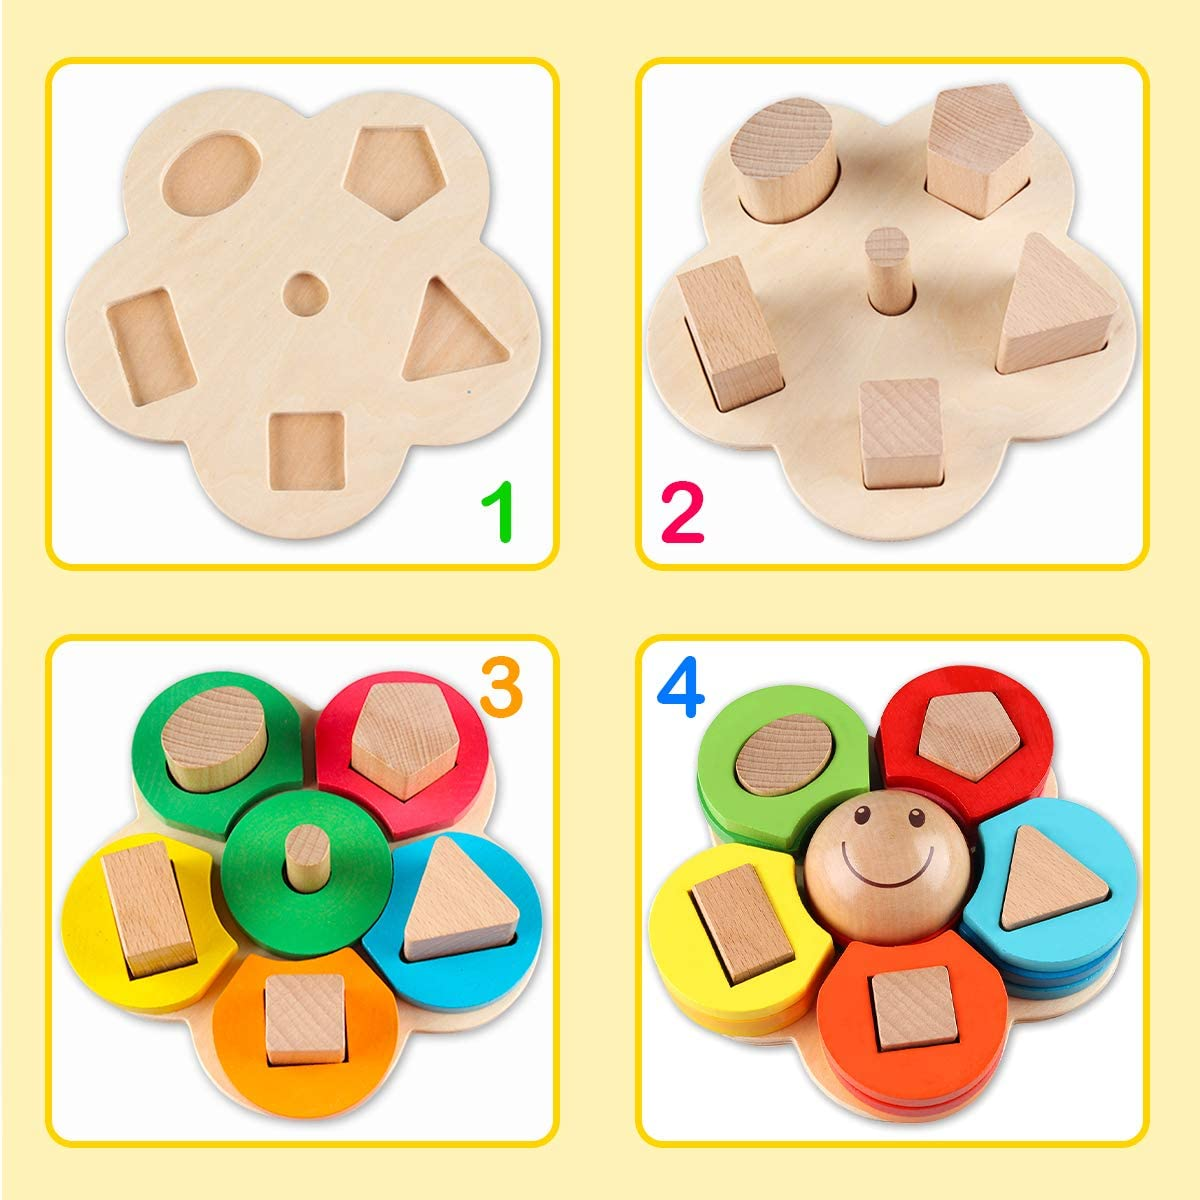 Vanmor Wooden Educational Toys for Toddlers Montessori Toys for 1 2 3 Year Old Kids Boys and Girls Learning Fine Motor Skills Preschool Shape Color Sorting Stacking Geometric Board Blocks Puzzle